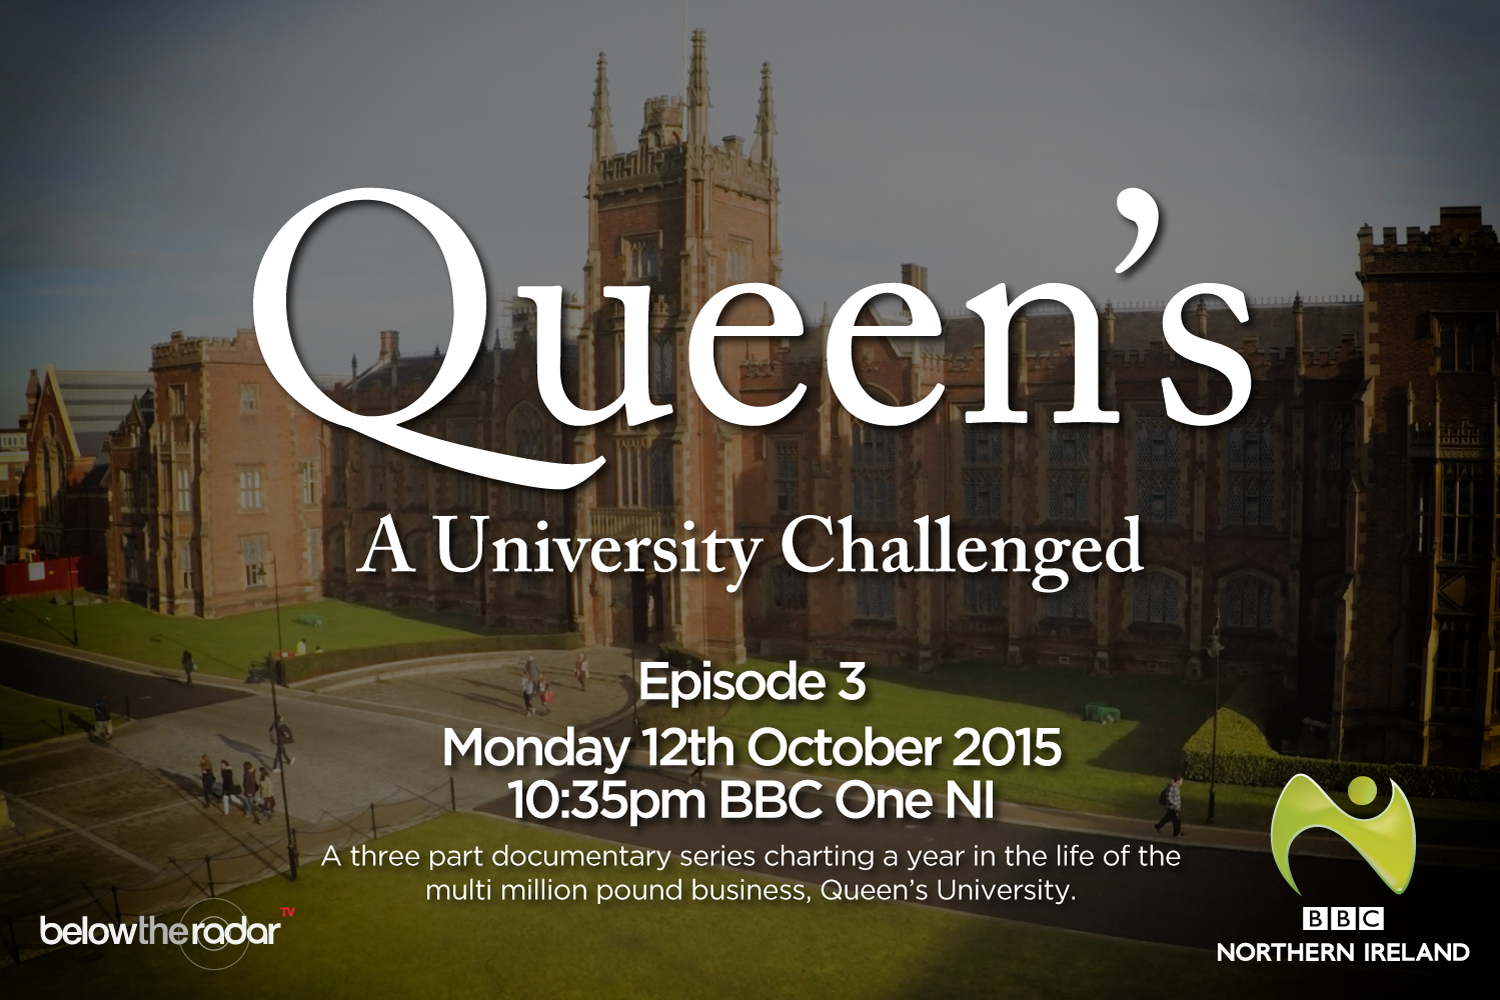 Queen's: A University Challenged - Series for BBC One NI